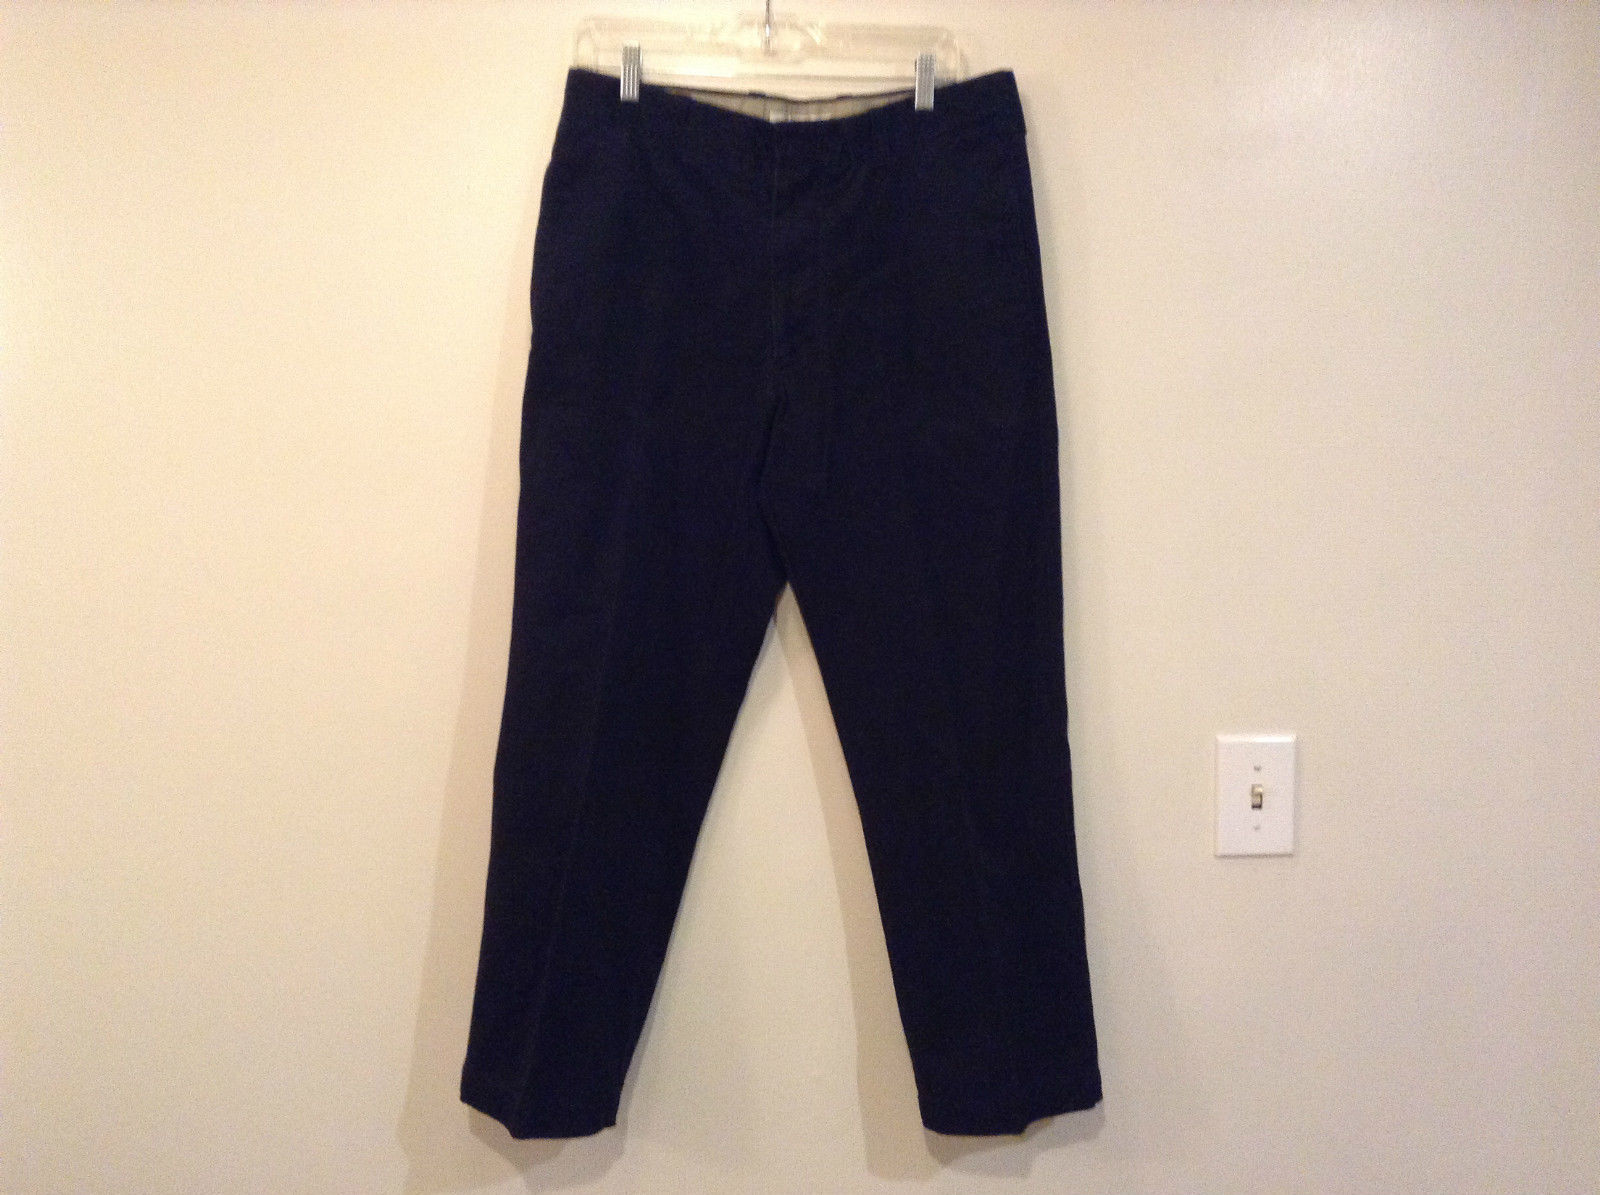 Black Casual Pants Size 34 by 29 Geoffrey Beene Button and Zipper Closure